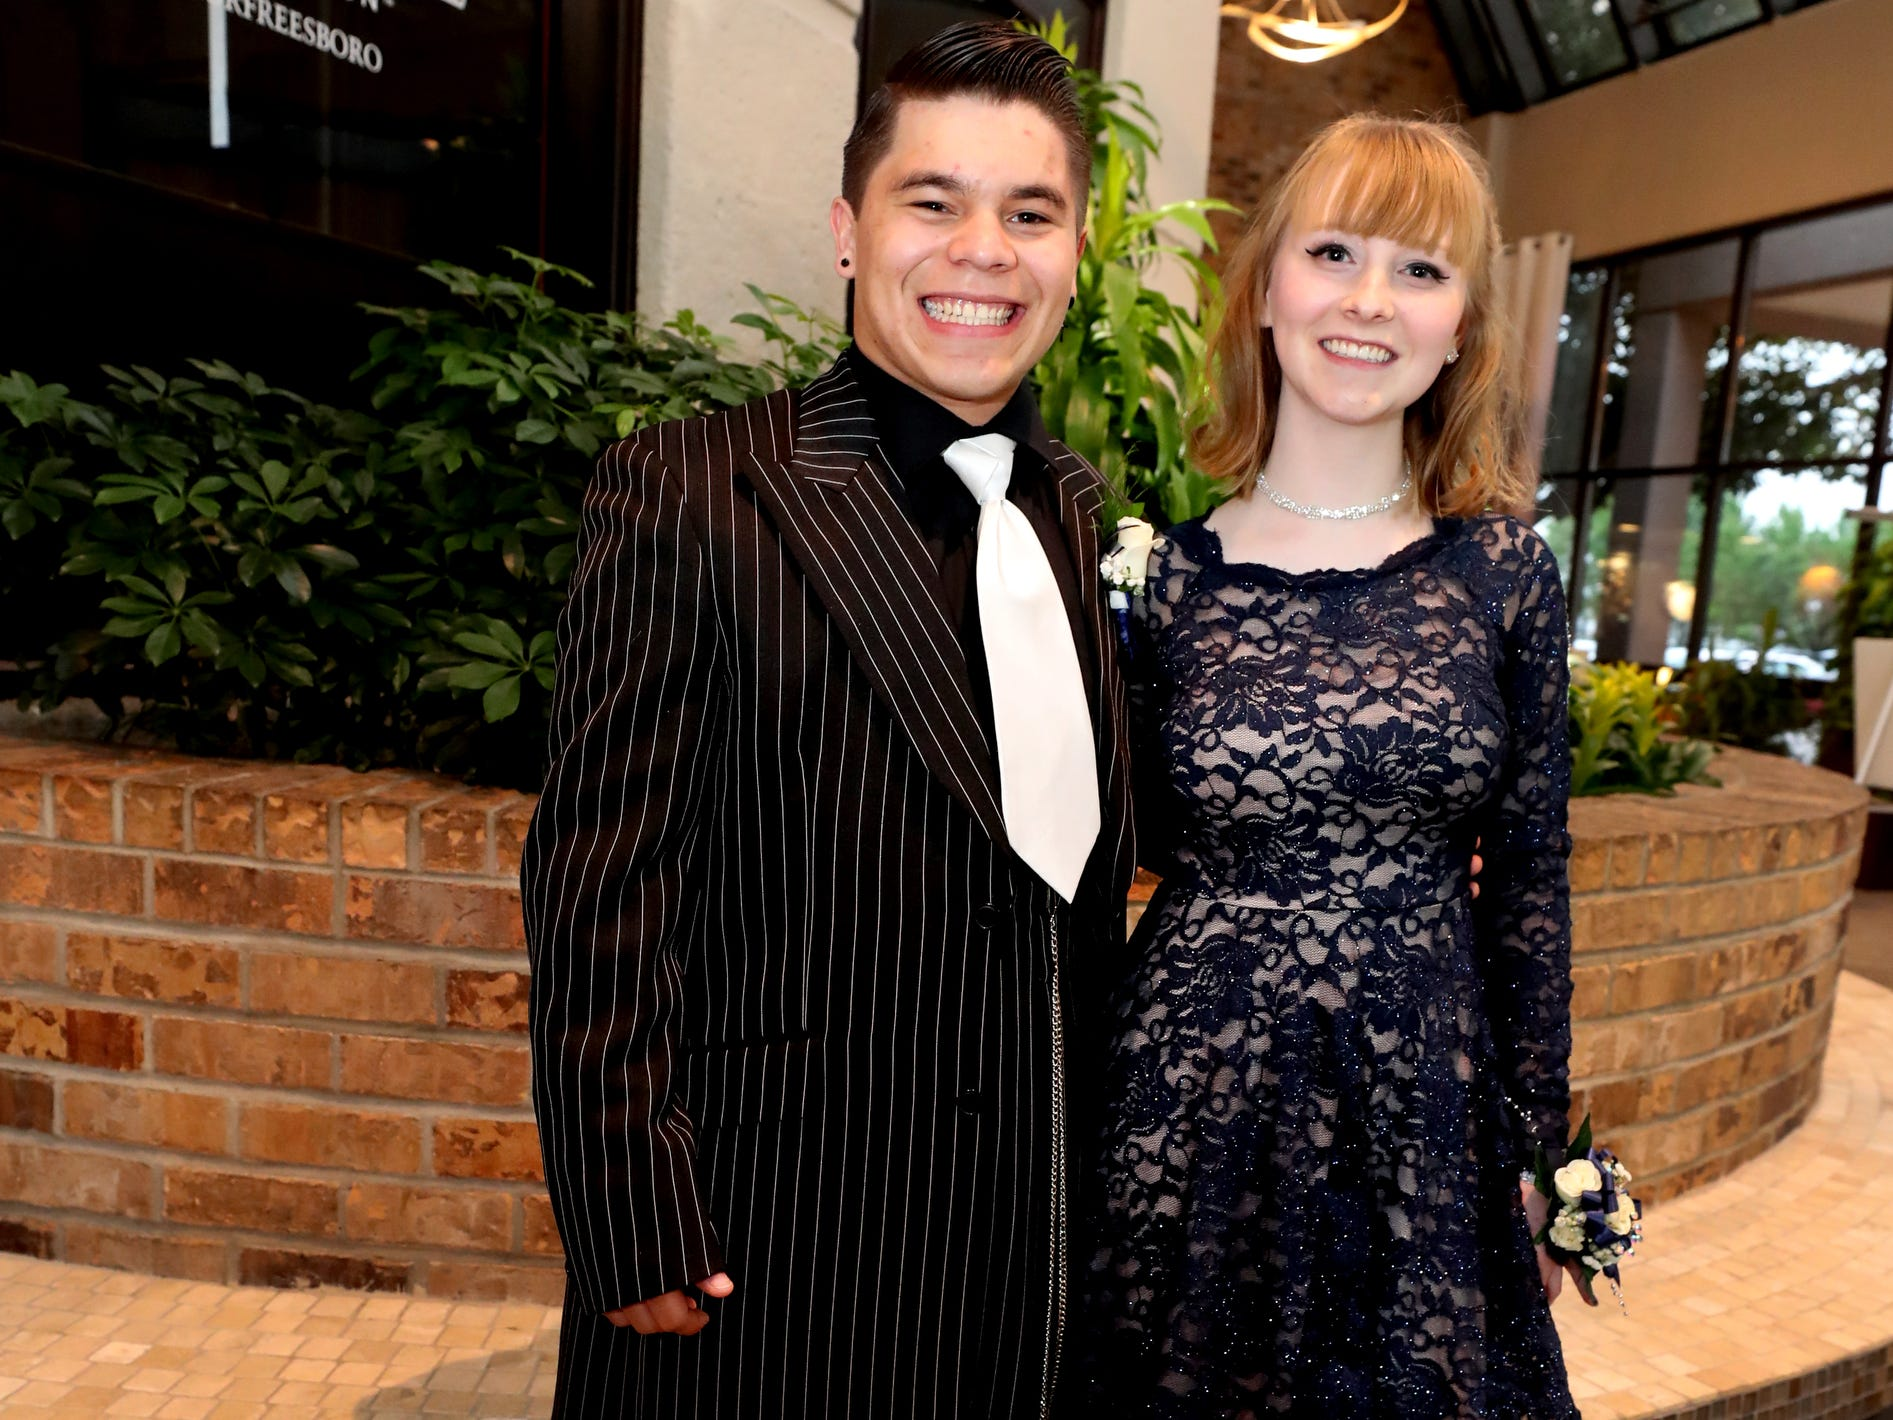 Gerardo Paez, left and Carolyn Ferguson at Holloway's prom at the DoubleTree on Thursday April 18, 2019.